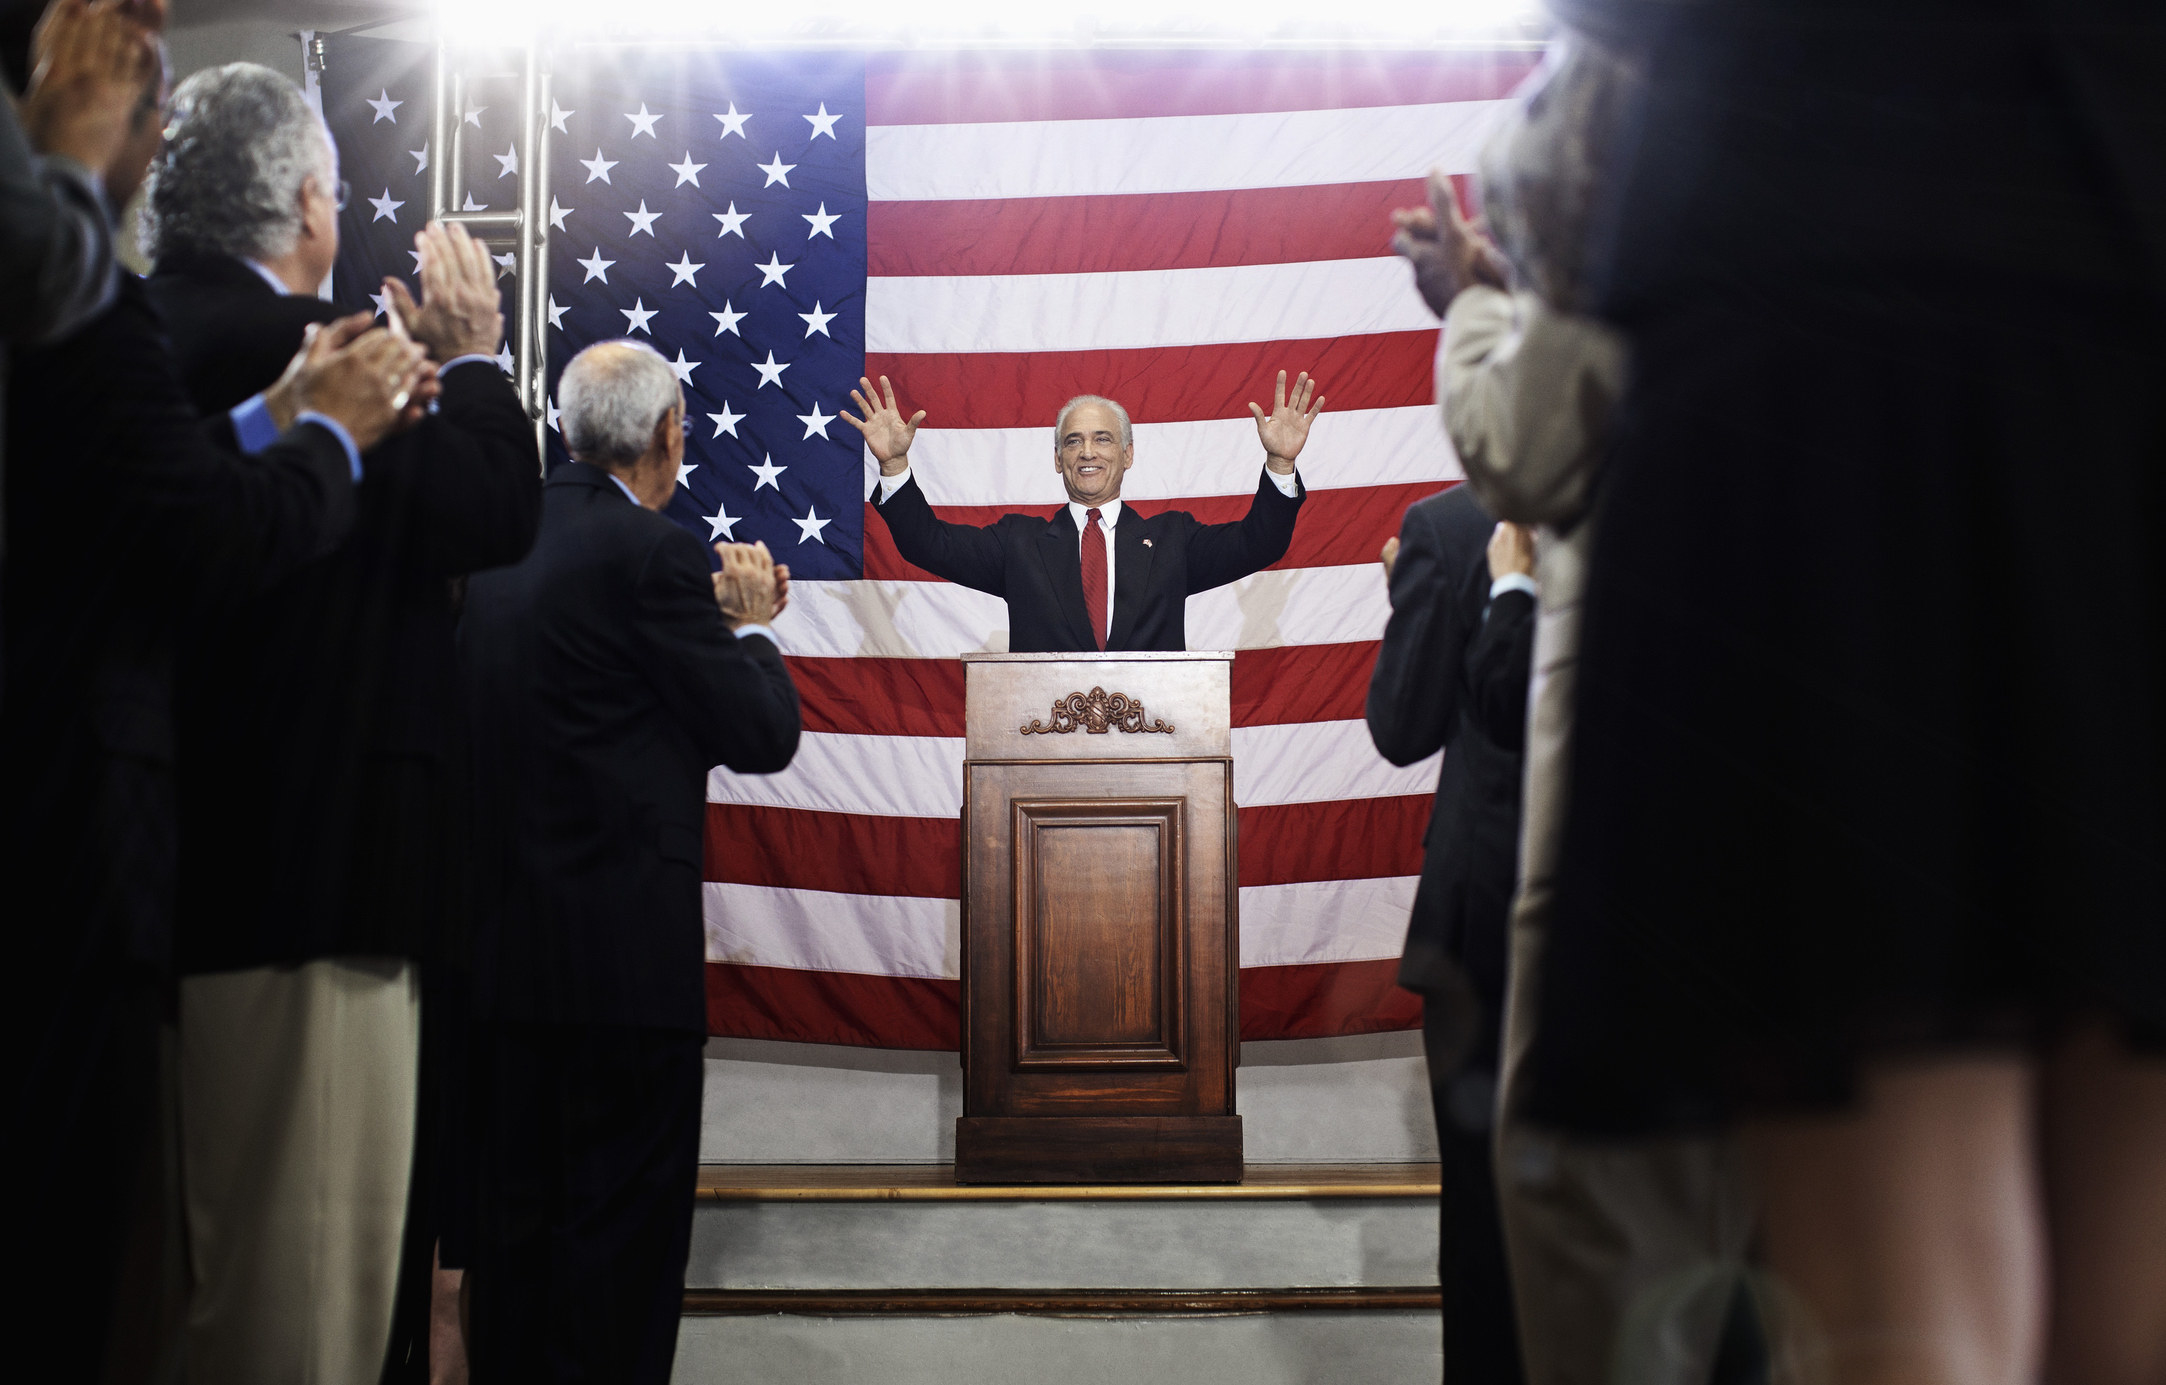 A politician at a podium with hands up toward the crowd, an American flag behind, and a group of people watching and clapping